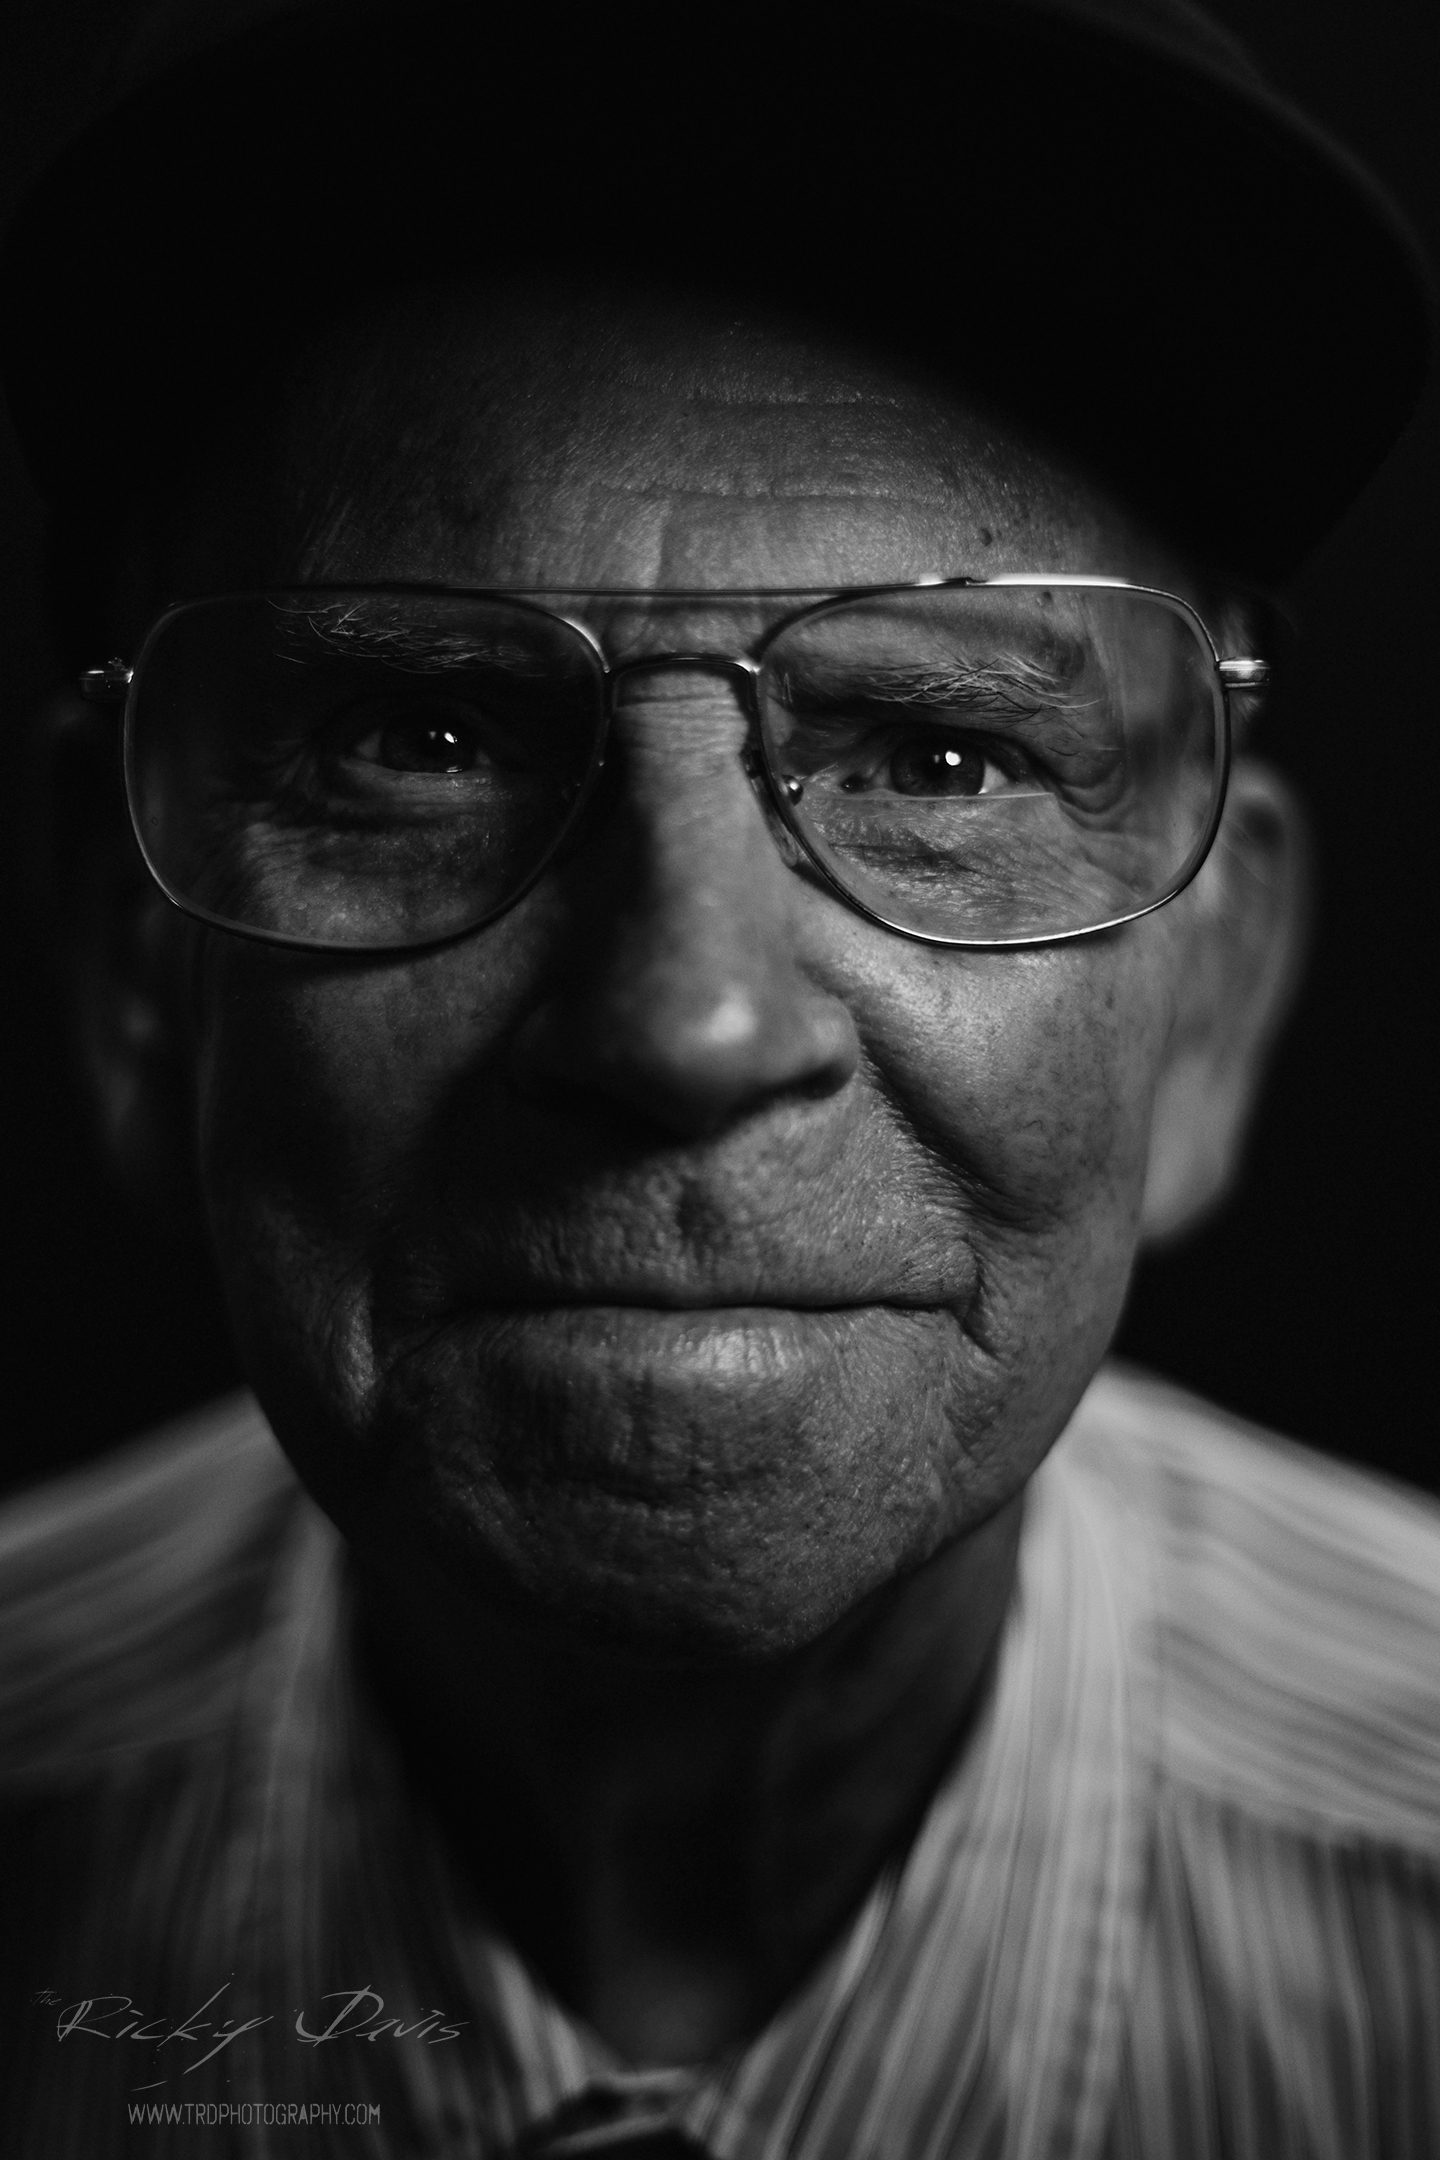 WWII & Vietnam Veteran - Master Sgt Cletis Bailey - Air Force - Photo by Ricky Davis of TRD Photography - Canon 6D.